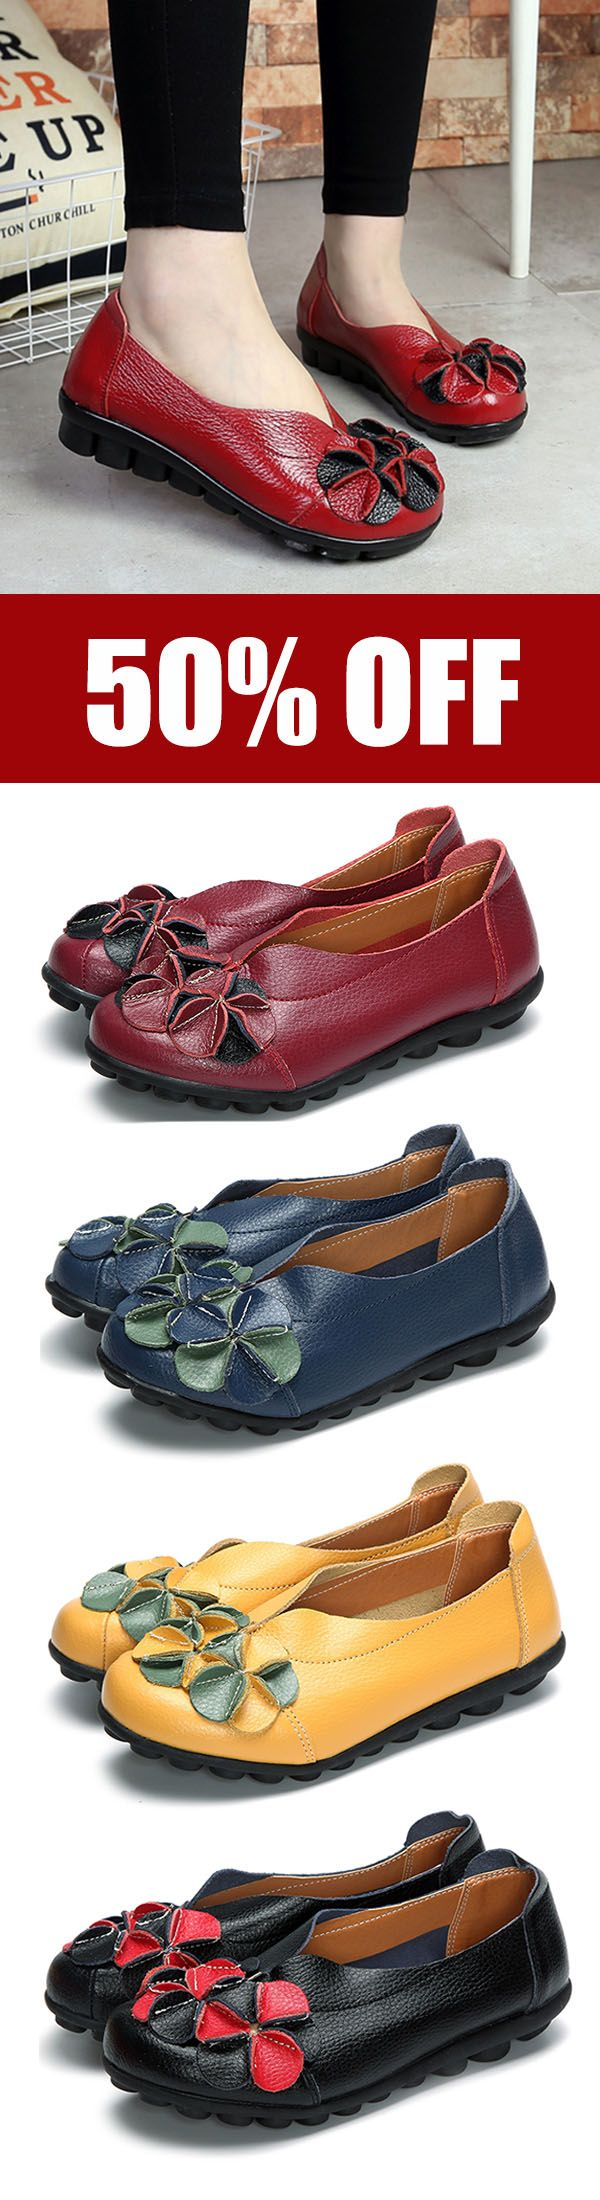 US Size 5-13 Women Flower Flat Shoes Casual Outdoor Leather Slip On Round Toe Loafers. #shoes #leather